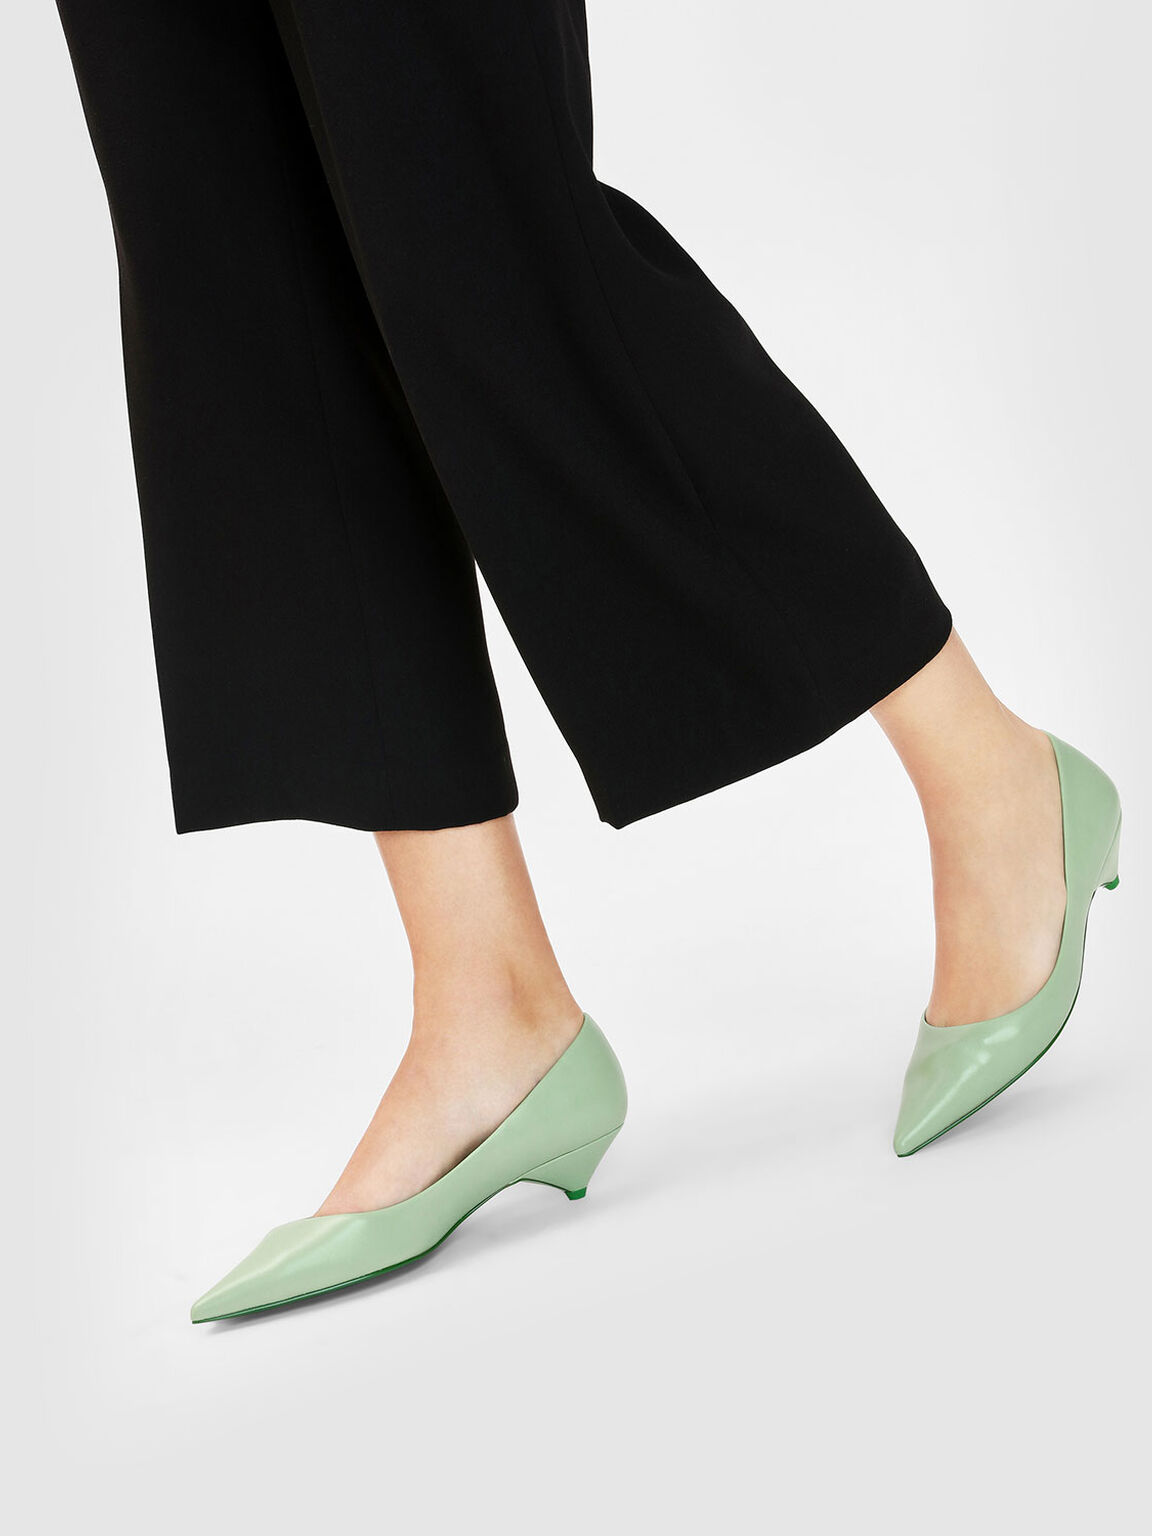 Classic Kitten Heel Pumps, Sage Green, hi-res